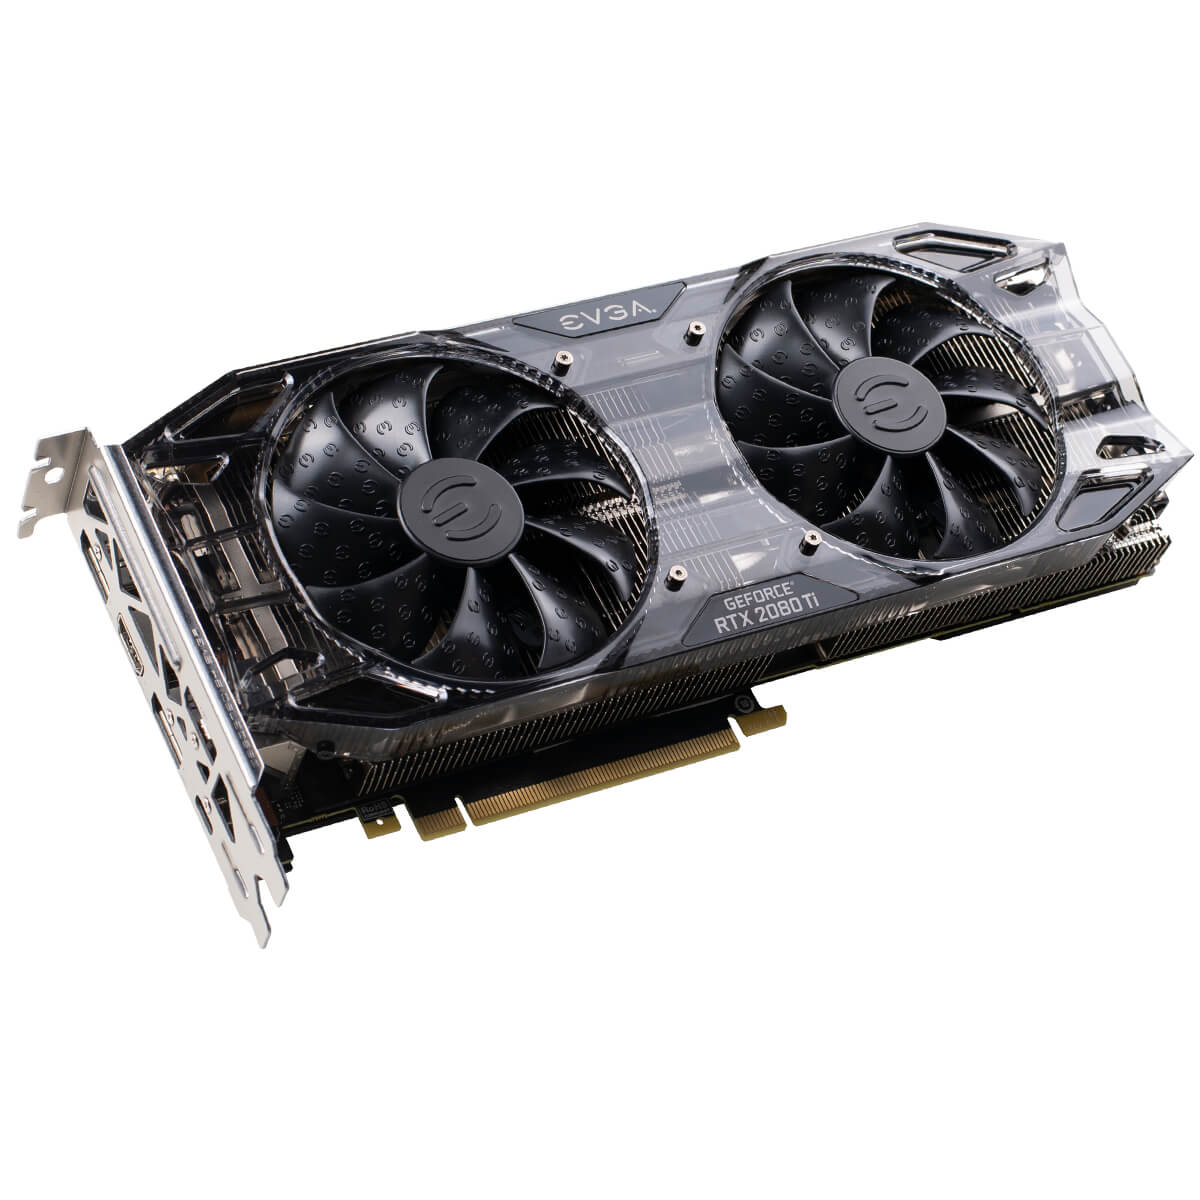 EVGA RTX 2080 Ti BLACK EDITION GAMING 11GB GDDR6